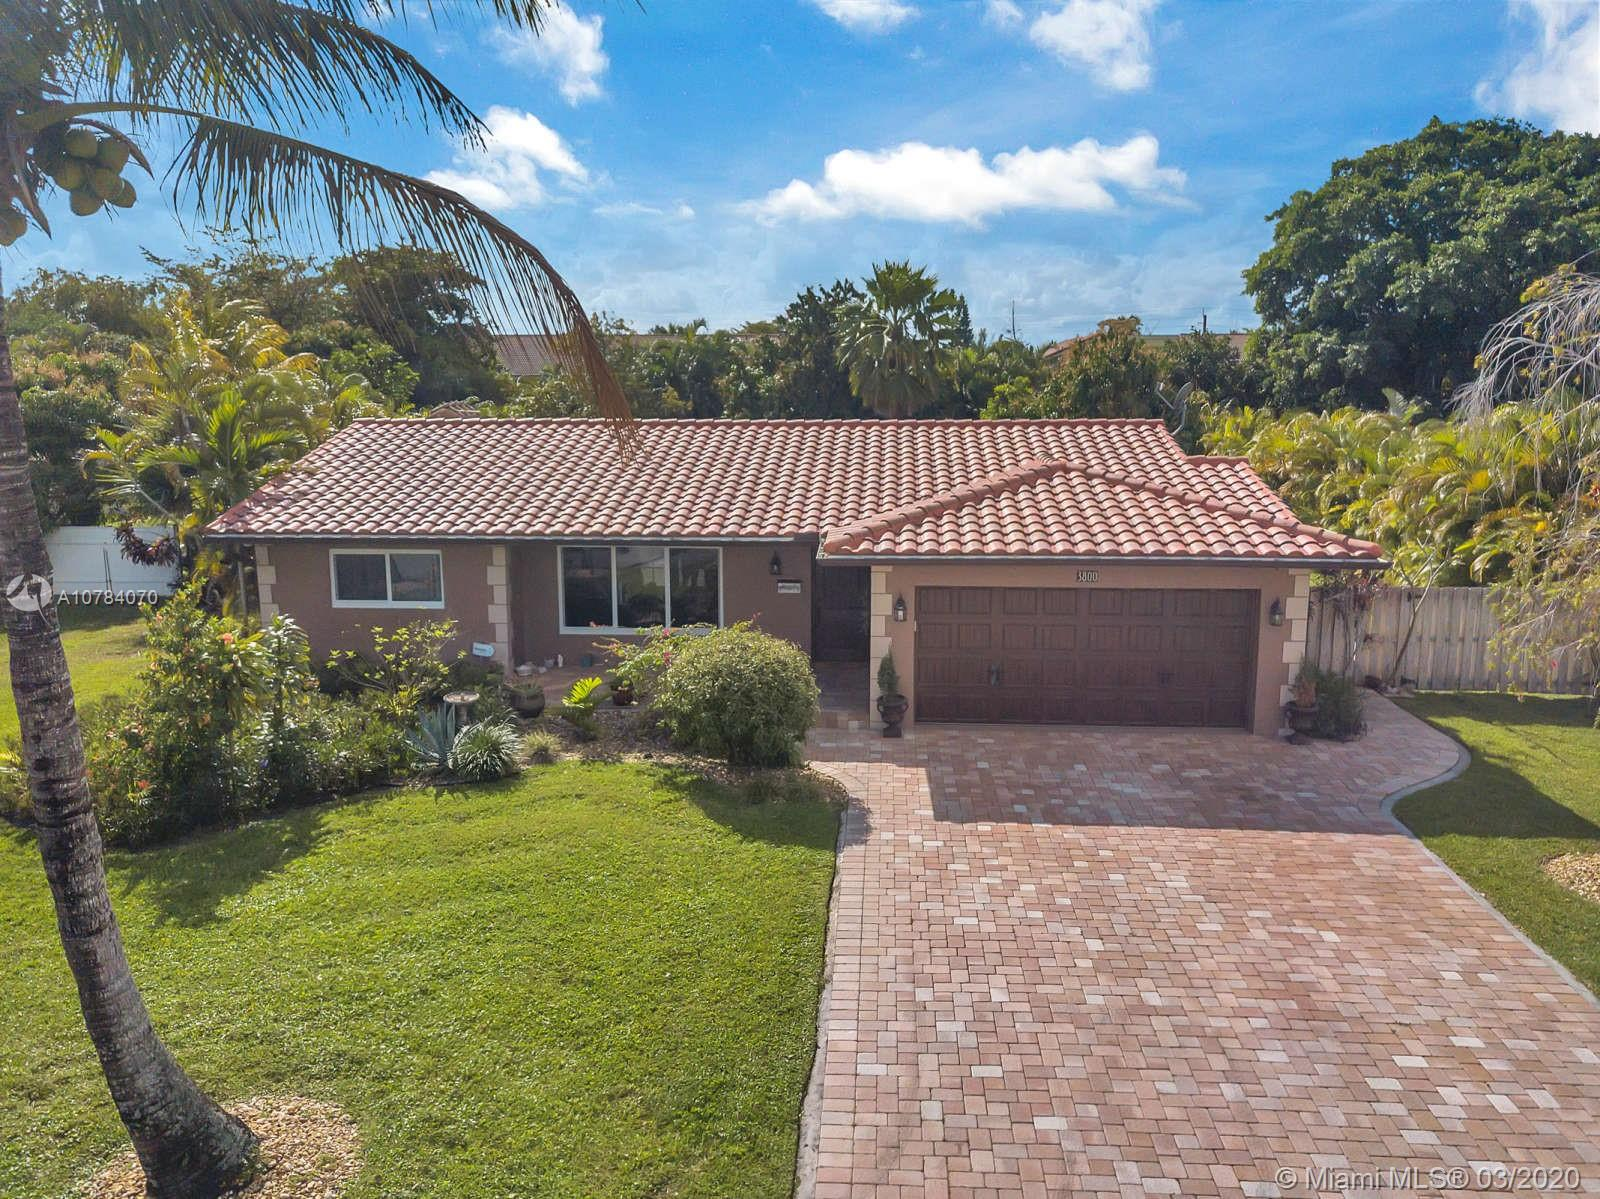 3800 NW 104th Ave, Coral Springs, FL 33065